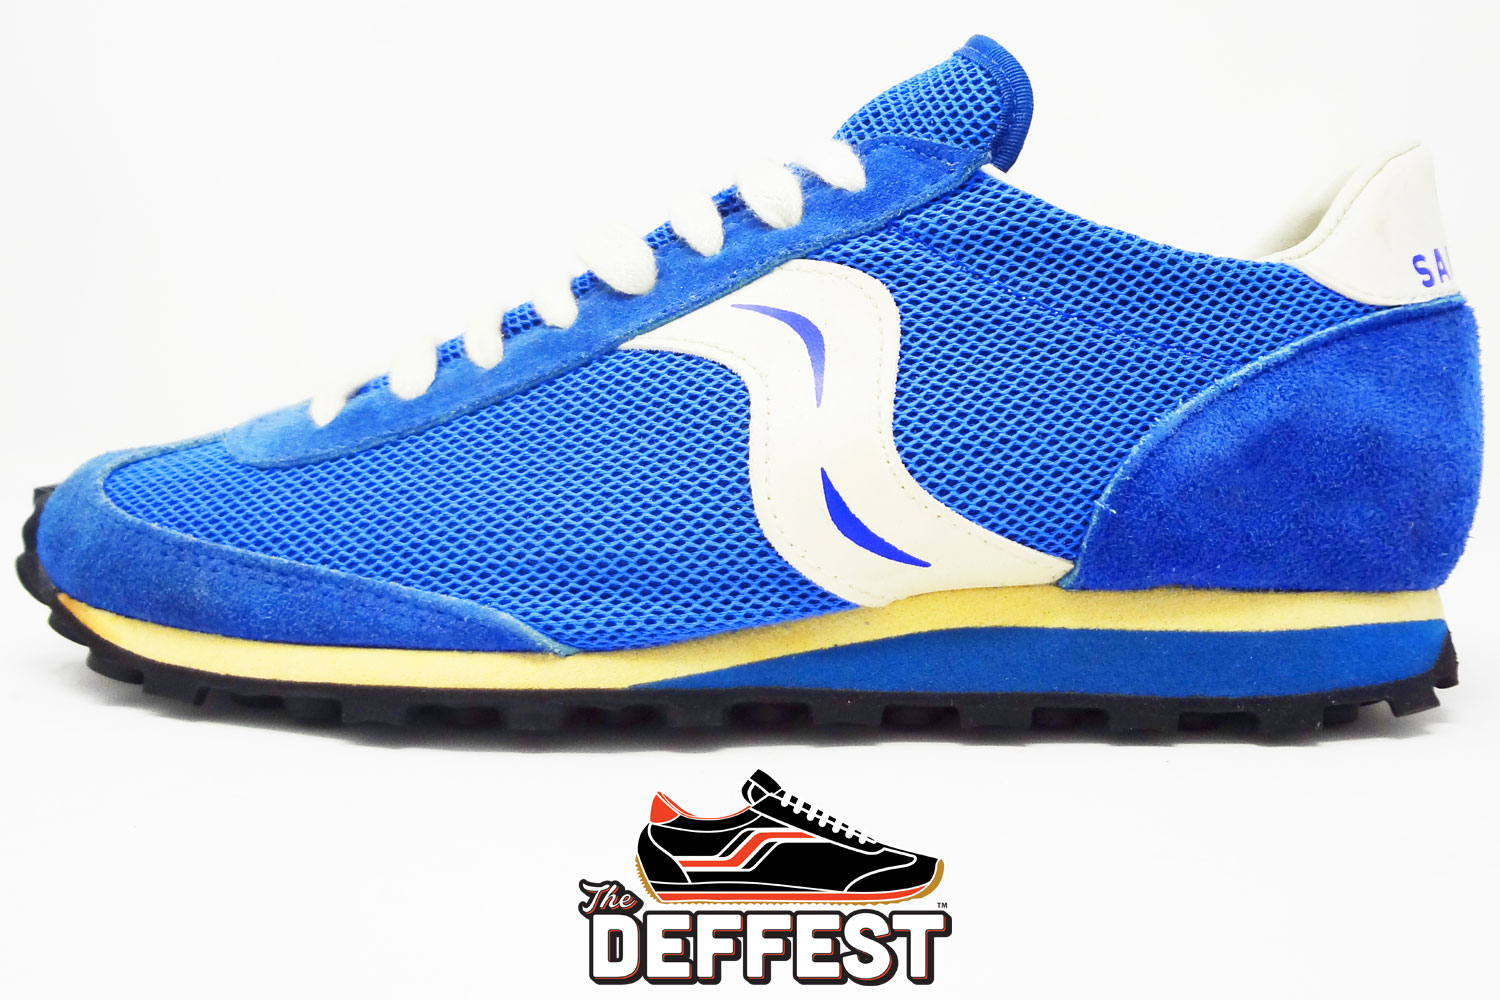 sale retailer e87f7 b9911 retro sneakers — The Deffest. A vintage sneaker blog ...